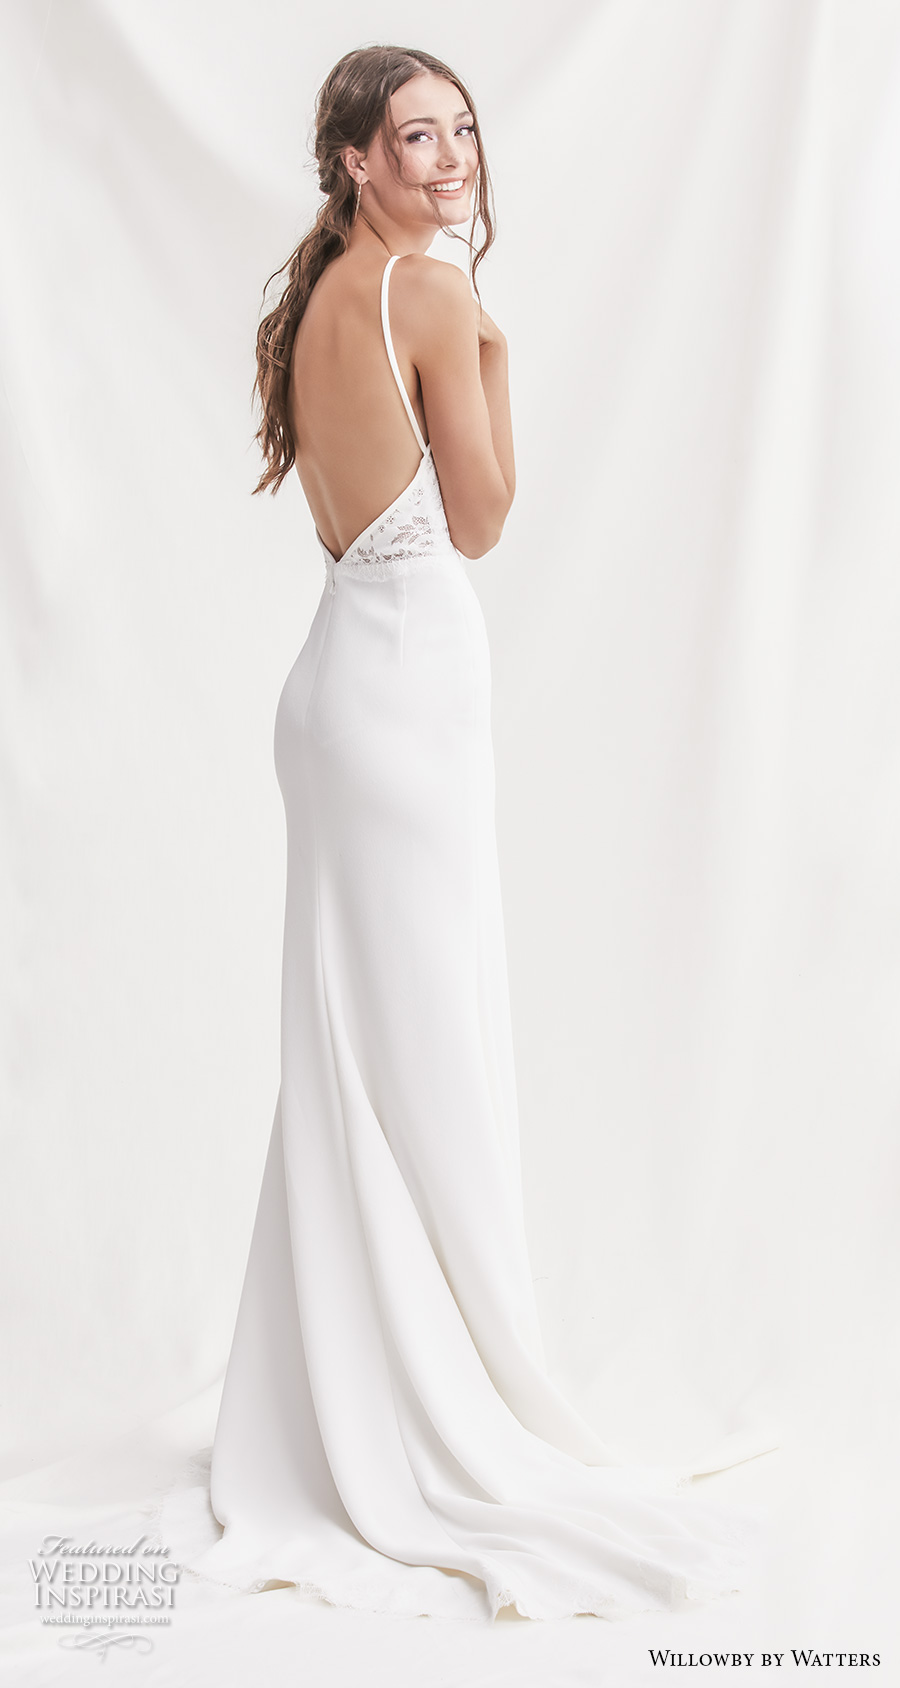 willowby by watters spring 2019 bridal sleeveless halter neck keyhole neckline heavily embellished bodice elegant sheath wedding dress backless short train (14) bv